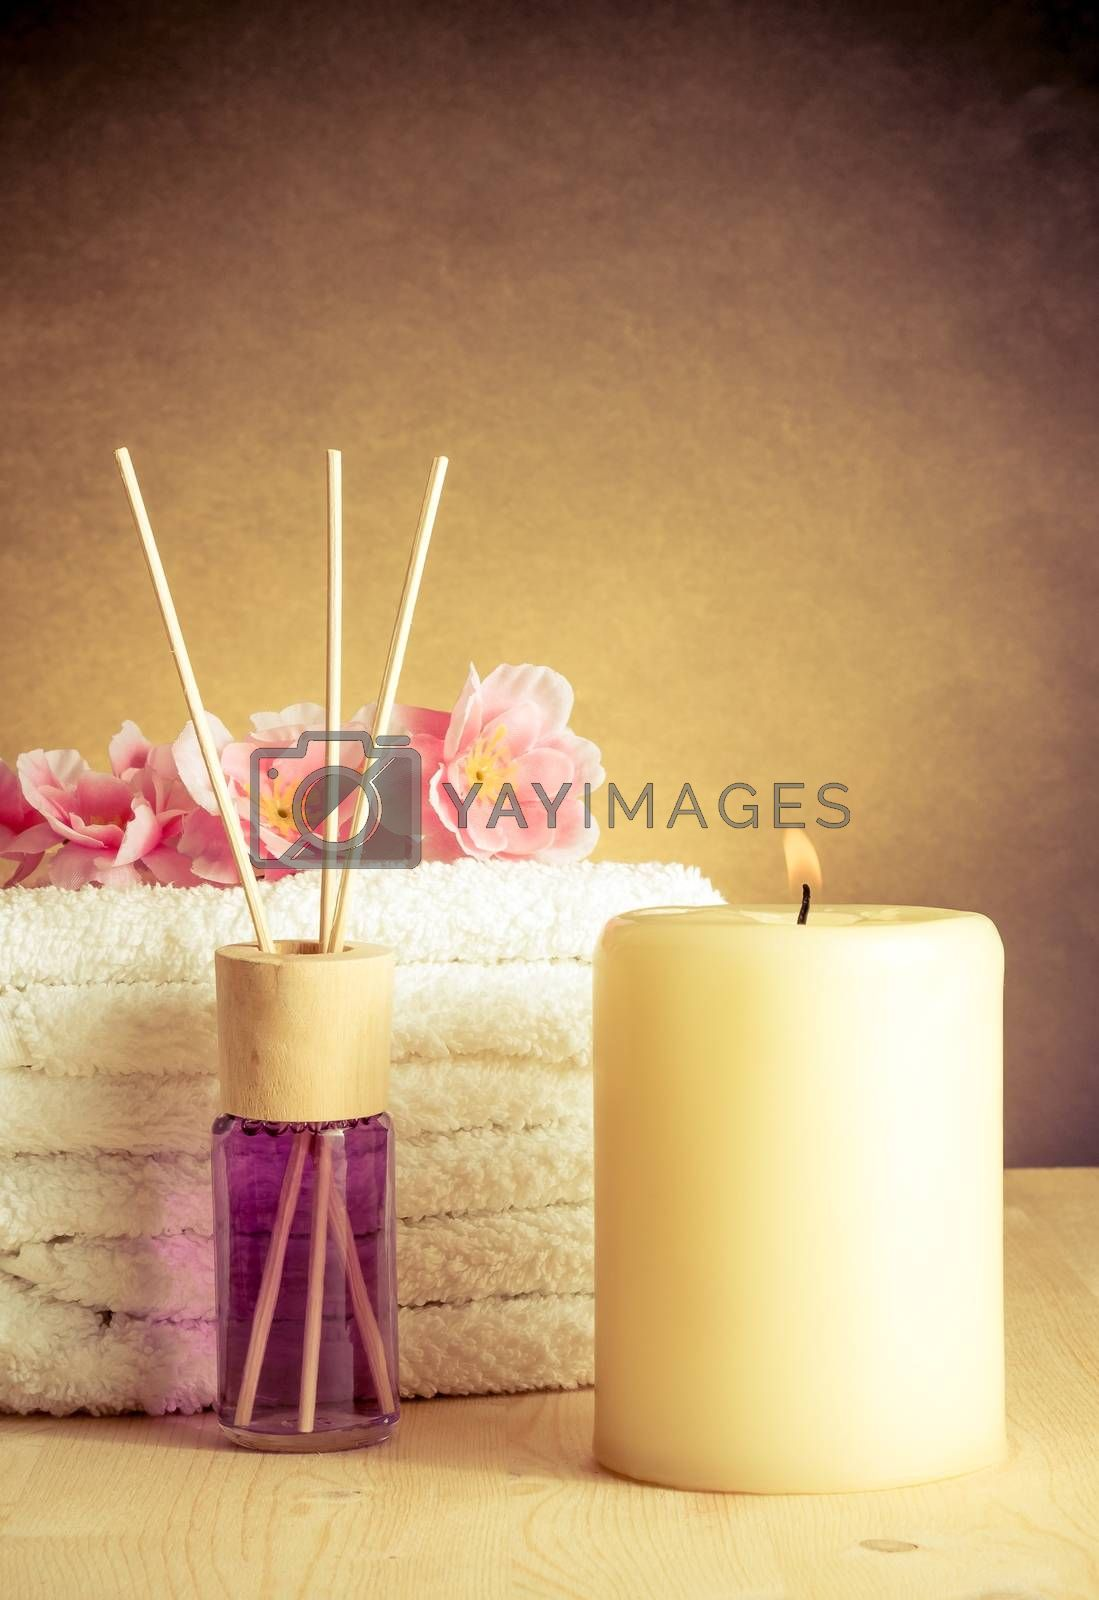 Spa massage border background with towel stacked, perfume diffuser by donfiore